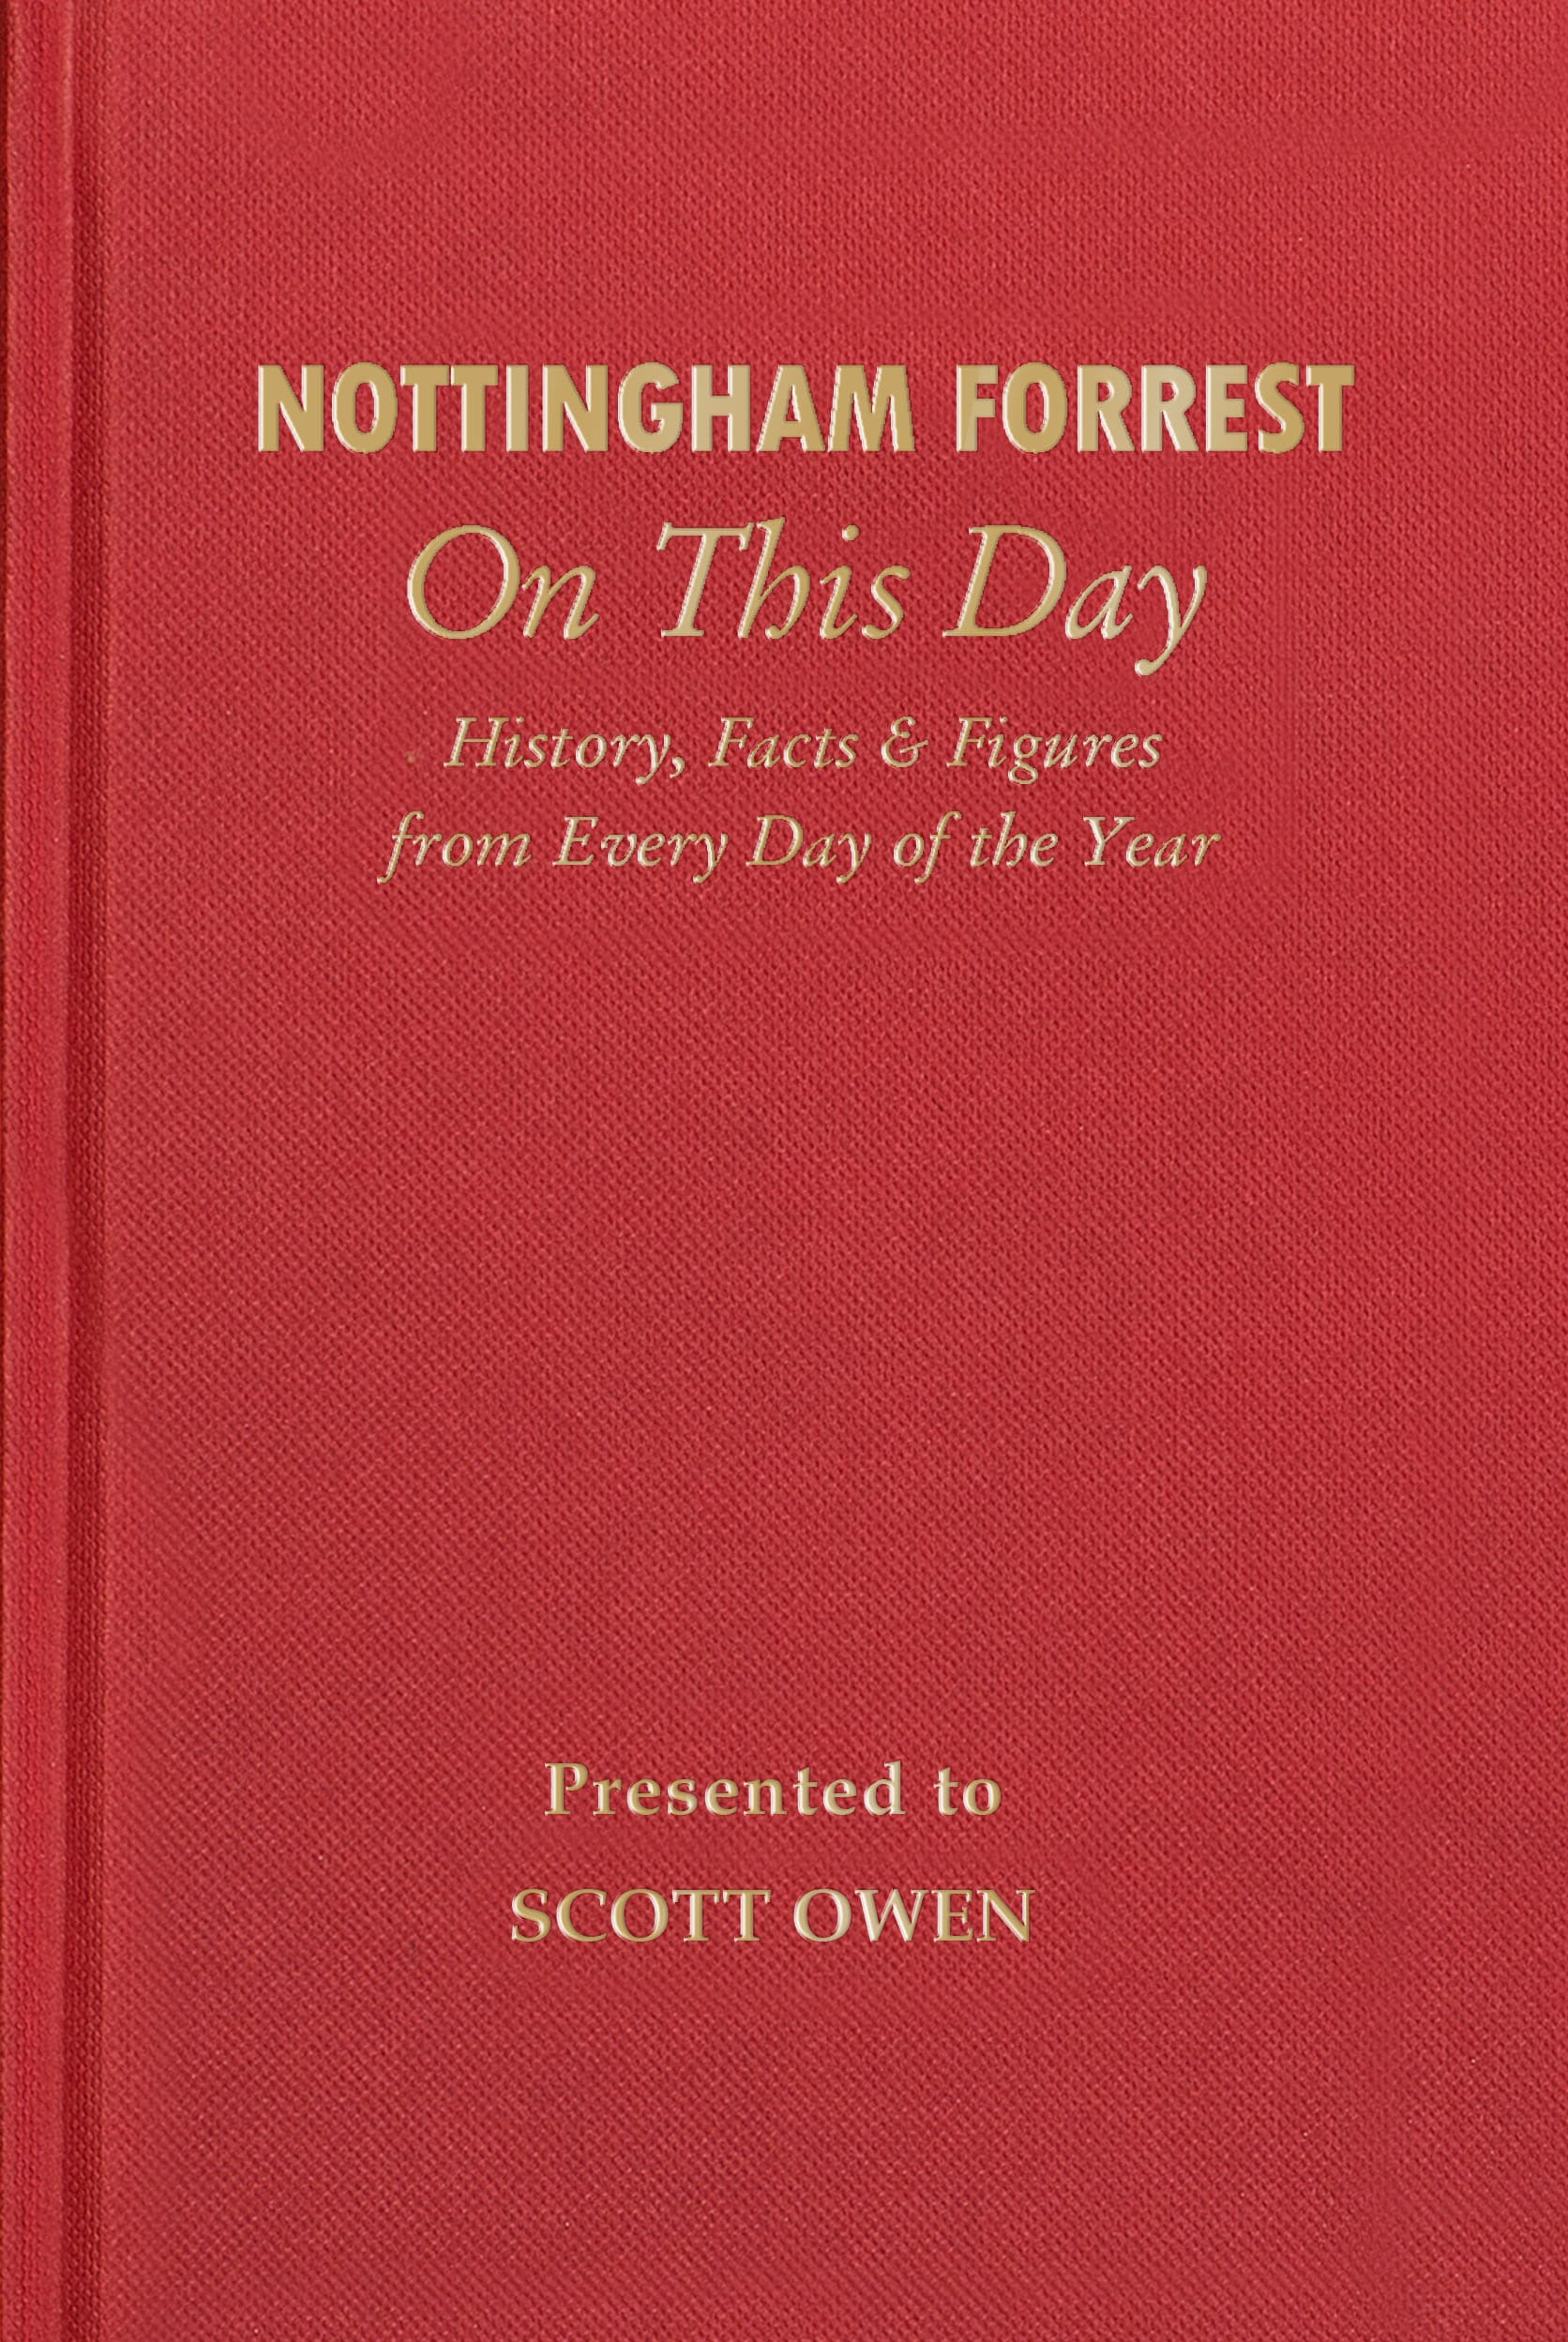 Nottingham Forrest Facts book